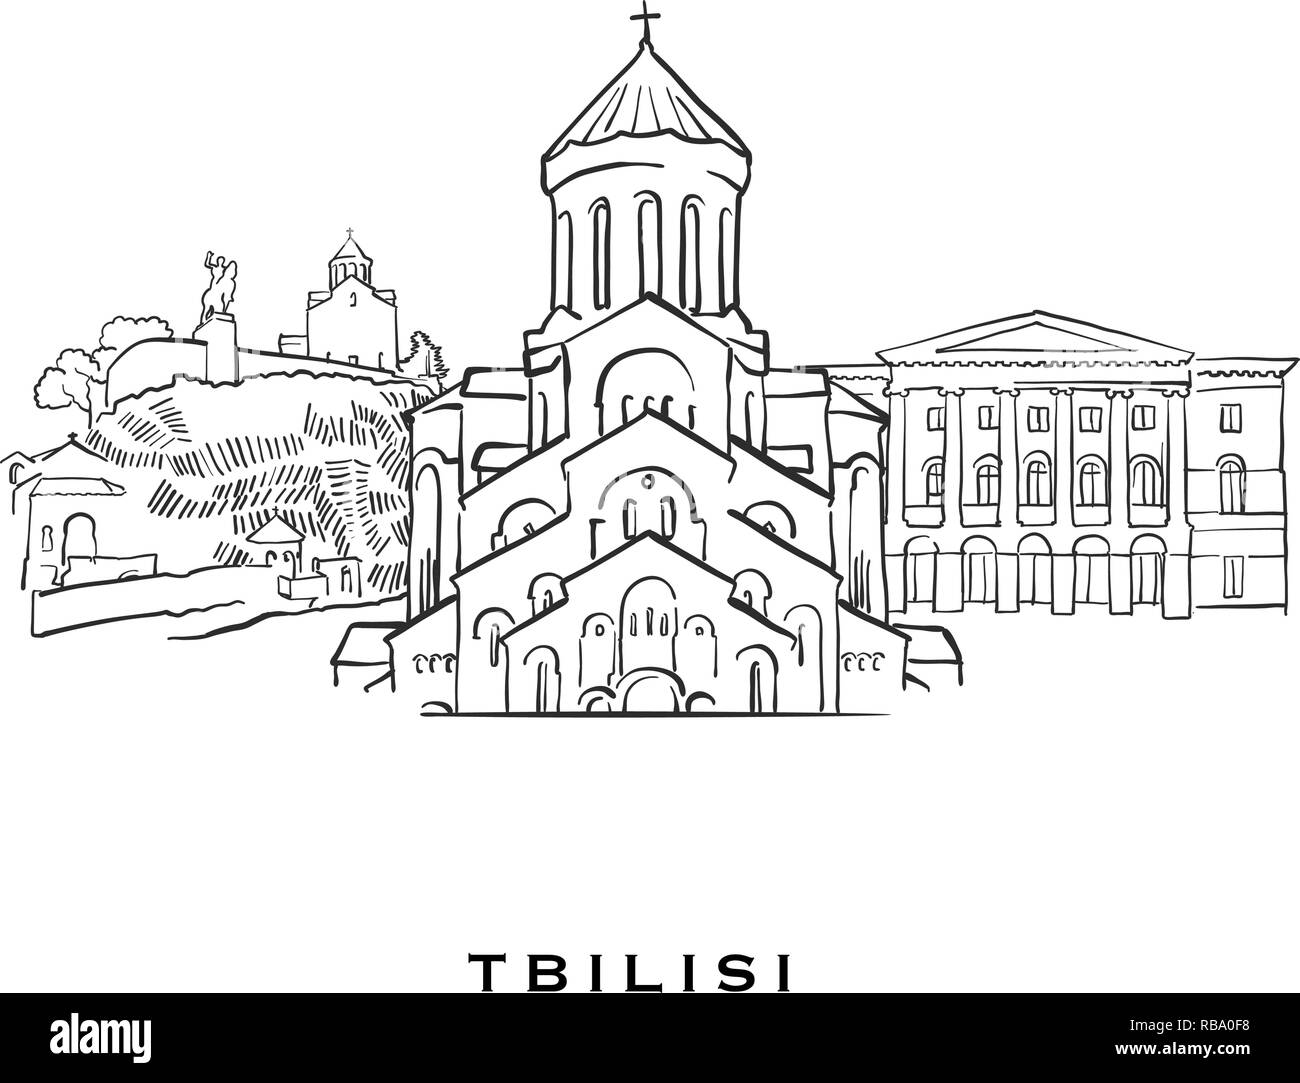 Tbilisi Georgia famous architecture  Outlined vector sketch